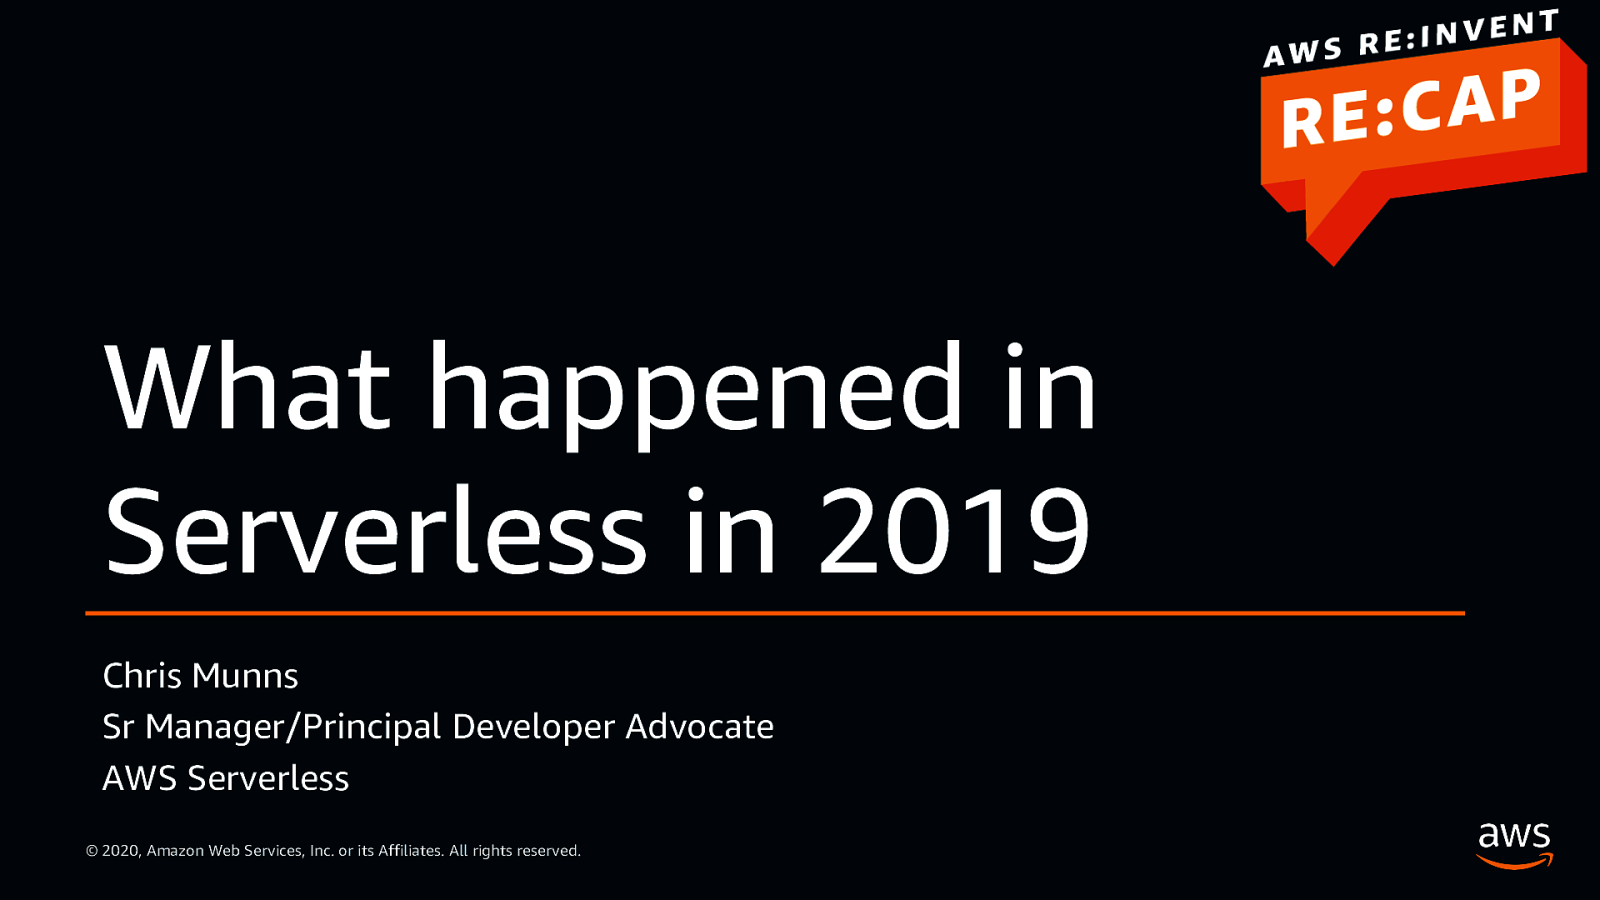 What happened in Serverless in 2019